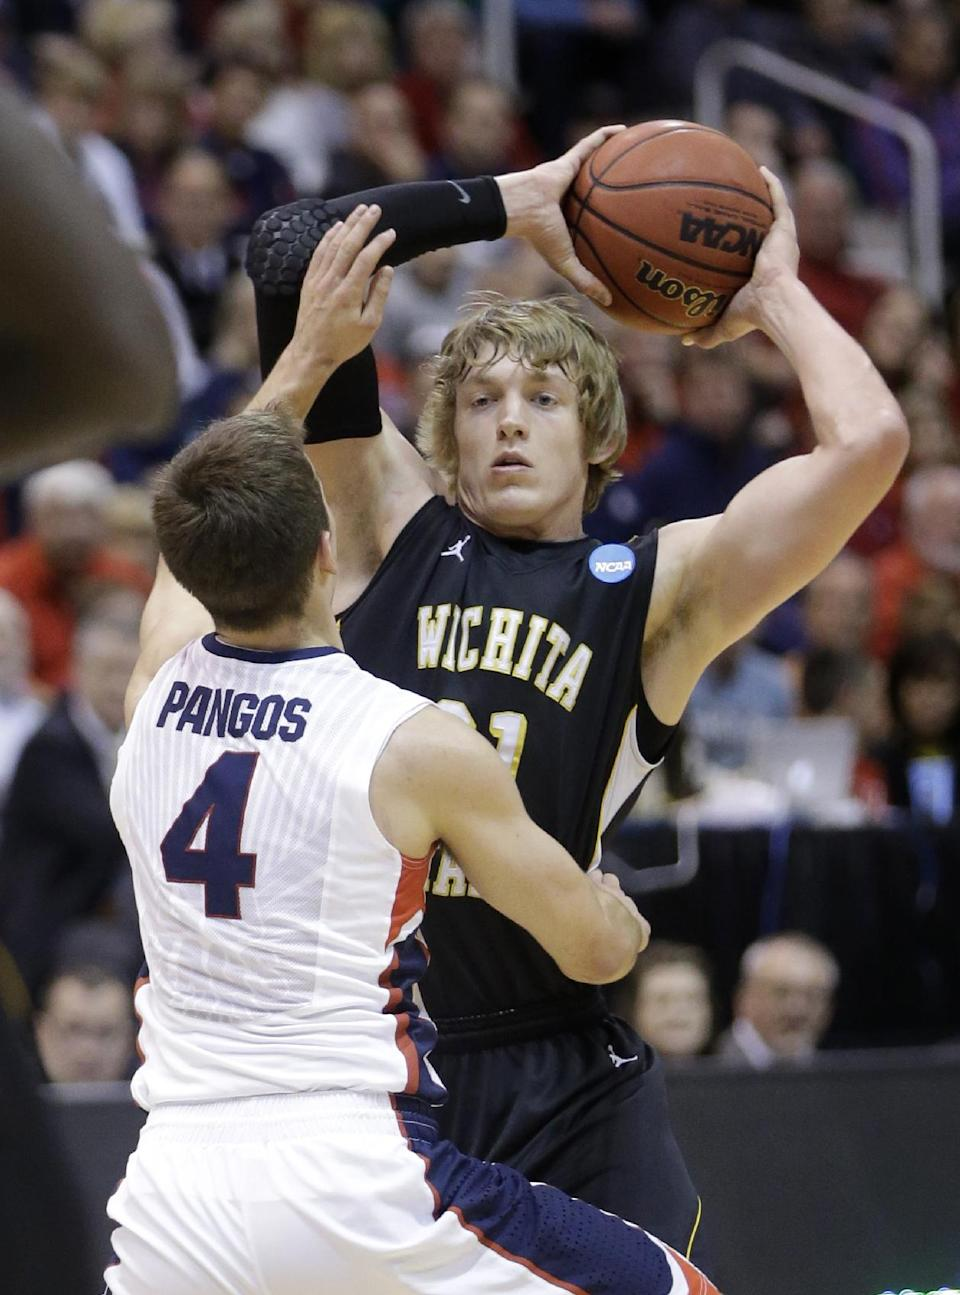 Gonzaga's Kevin Pangos (4) guards Wichita State's Ron Baker (31) in the first half during a third-round game in the NCAA men's college basketball tournament in Salt Lake City Saturday, March 23, 2013. (AP Photo/Rick Bowmer)